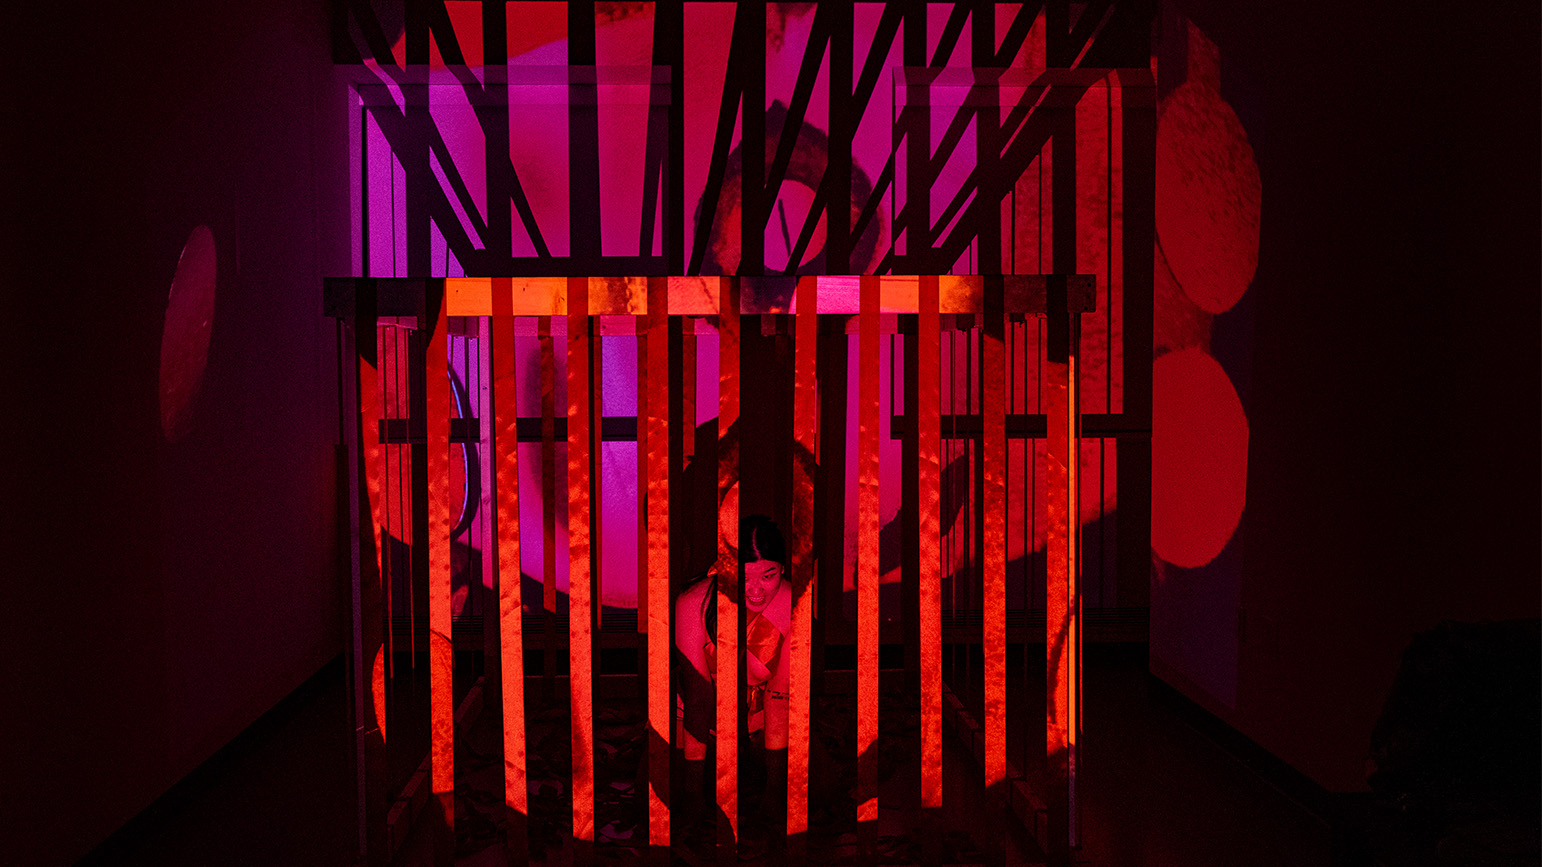 In a dark space with bright red and link light, a person is behind bars